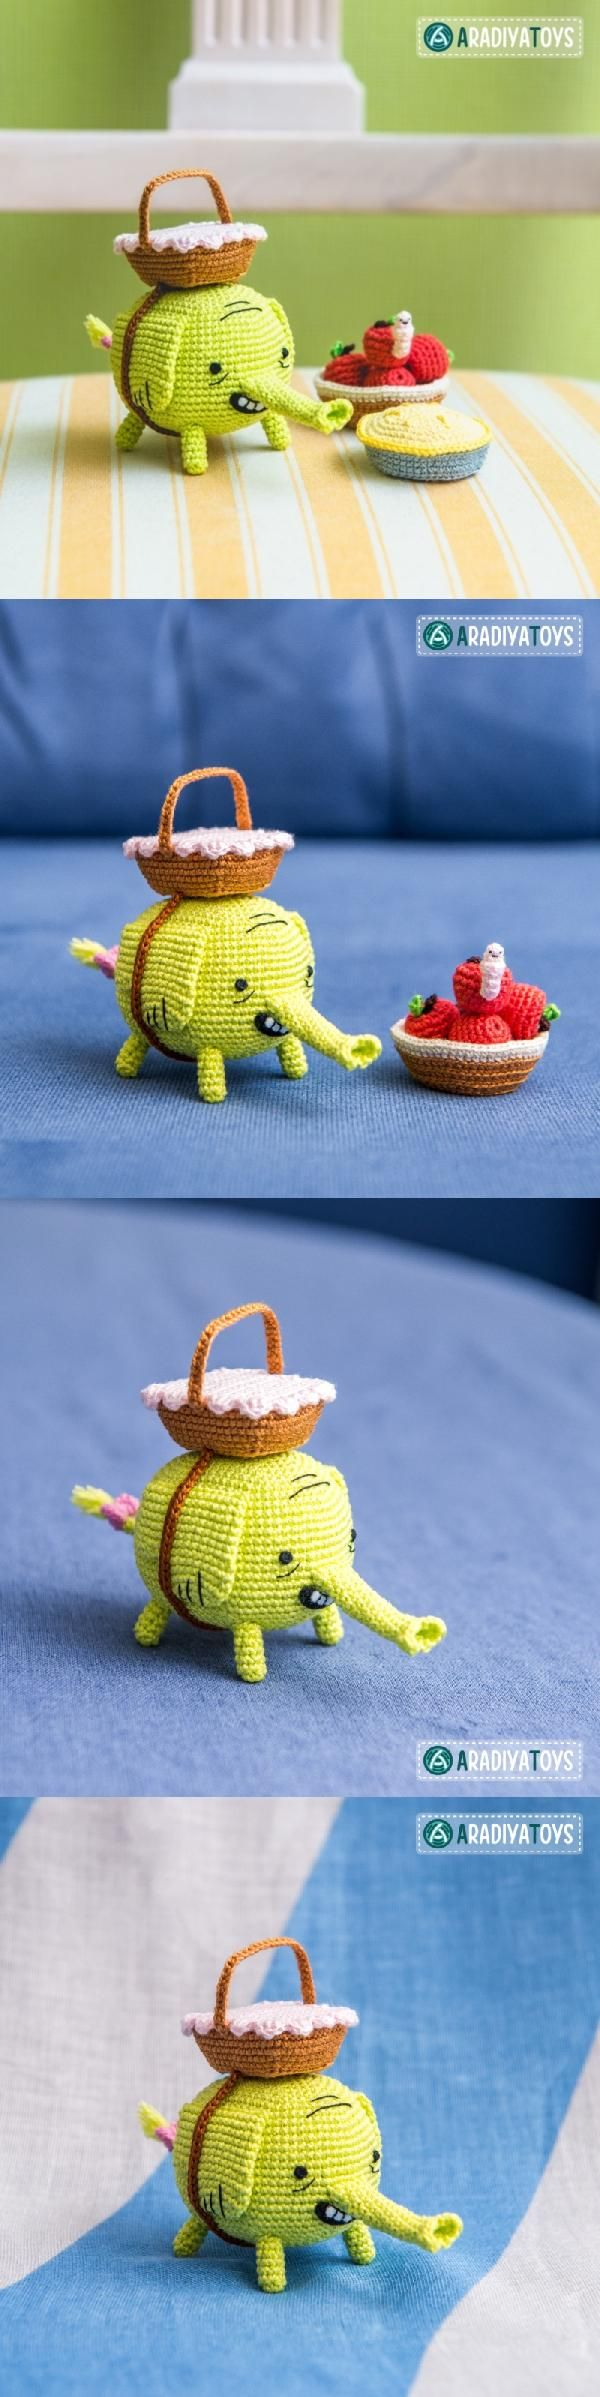 "Tree Trunks (""Adventure Time"") Amigurumi Pattern"